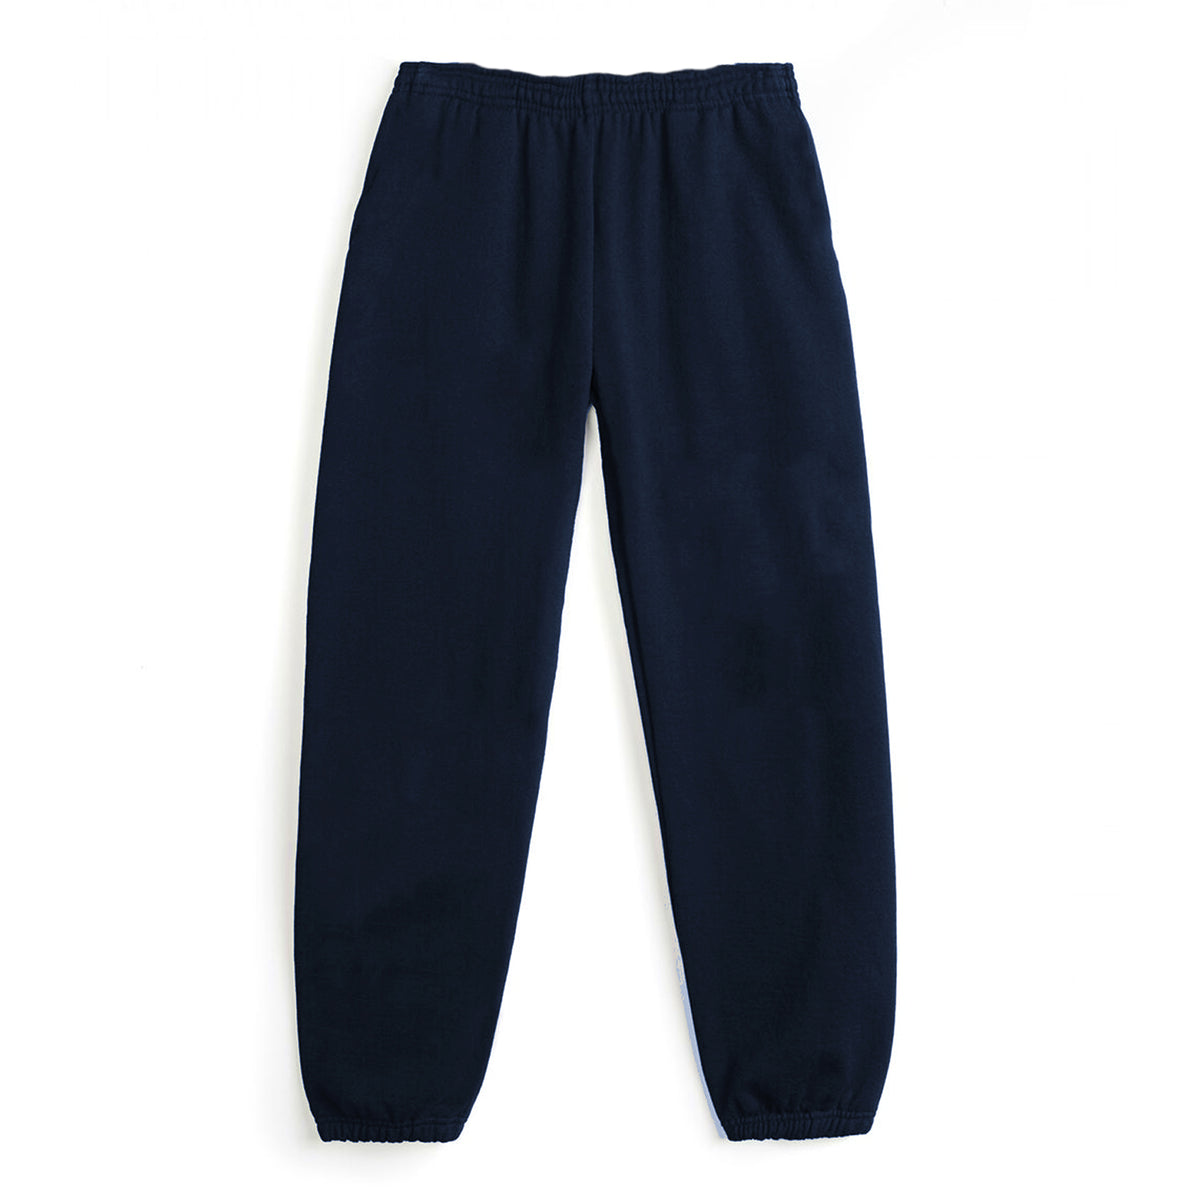 EARTH EMBASSY - FLEECE BOTTOMS - NAVY